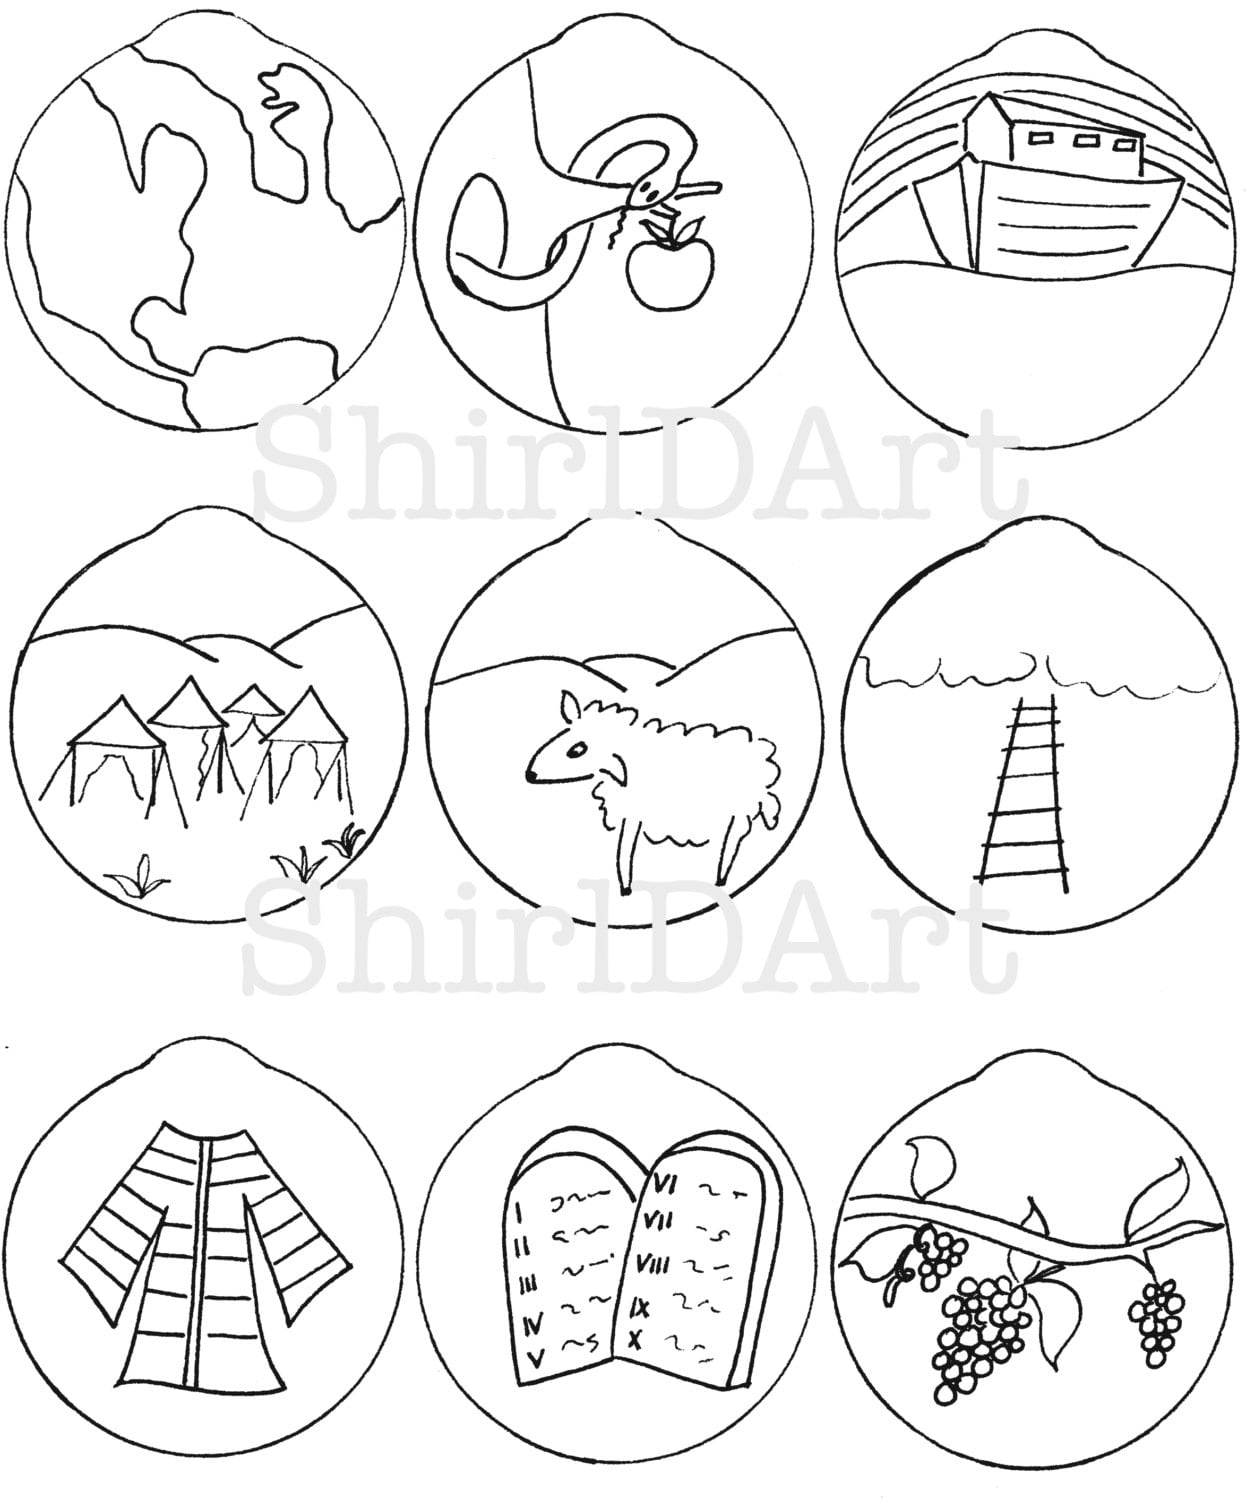 Jesse Tree Ornaments Coloring Sketch Coloring Page